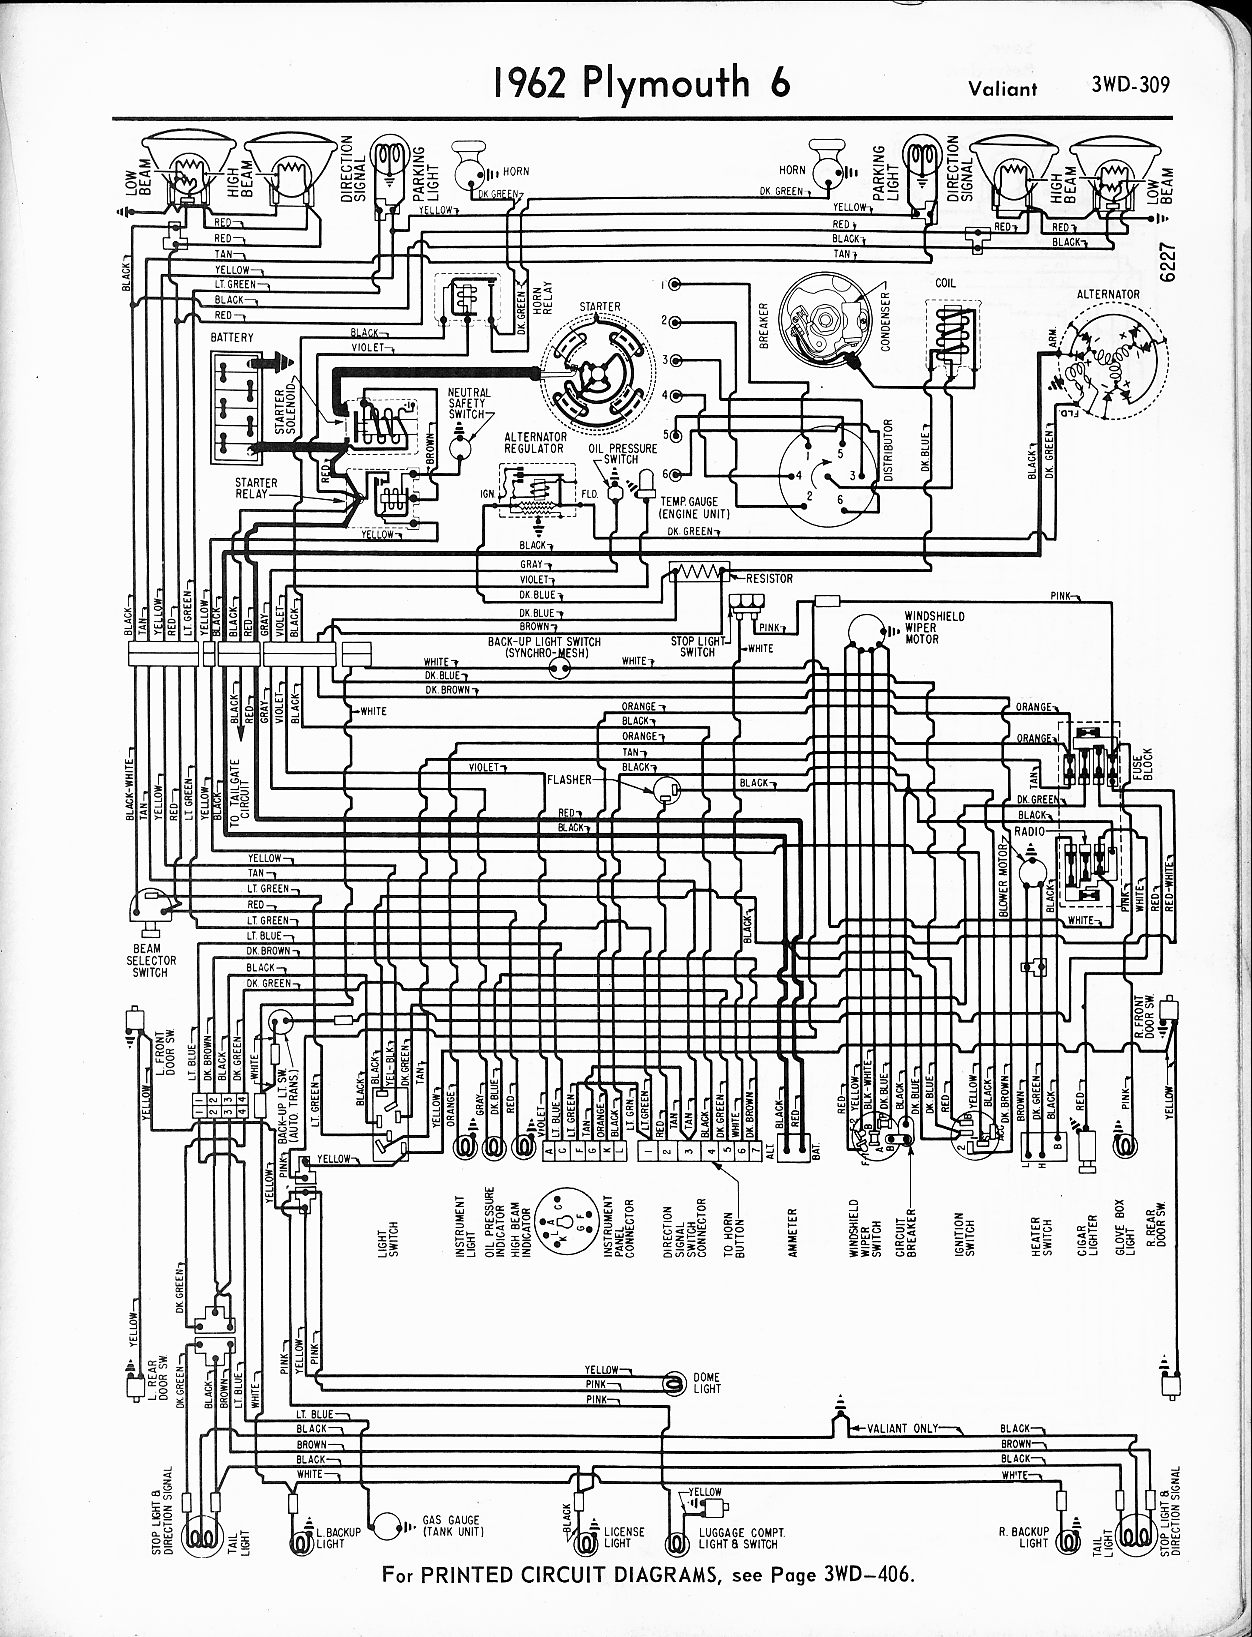 1970 Cuda Dash Wiring Diagram Great Design Of 69 Plymouth Road Runner 71 Get Free Image About Mustang 1969